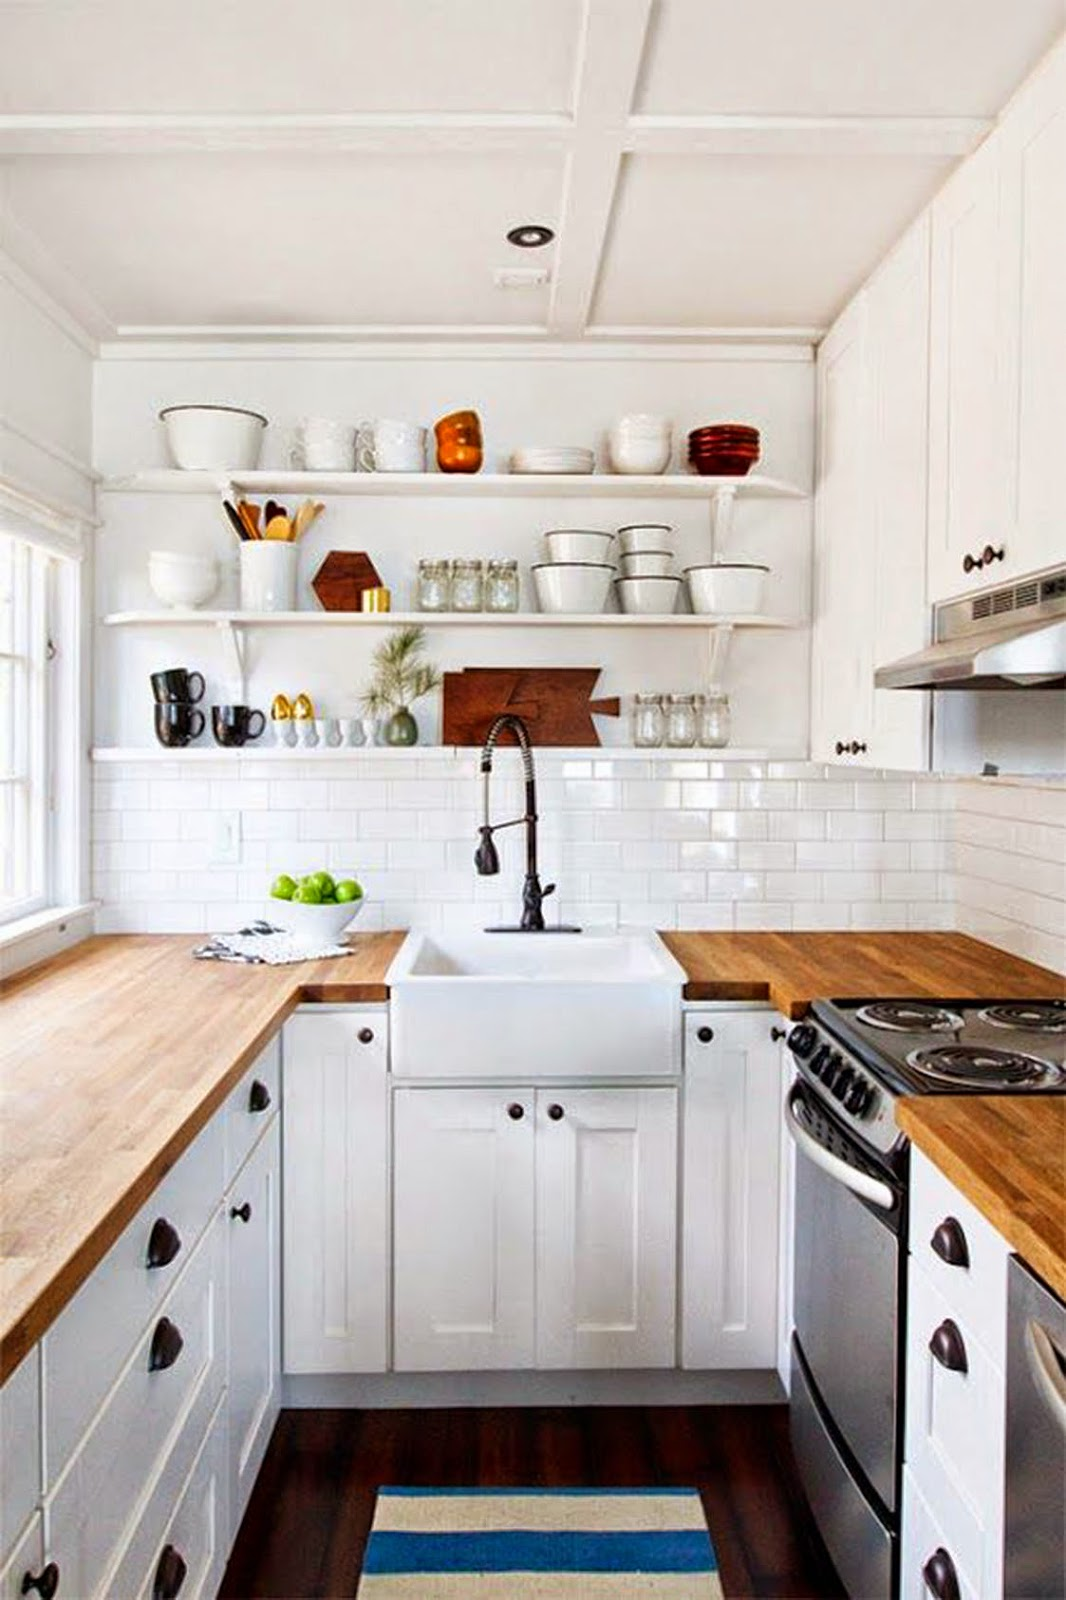 High Quality Pretty Soon It Became Apparent That I Was Leaning Towards A Particular Look  U2014 White Cabinets And Subway Tile, Paired With Butcher Block Countertops: